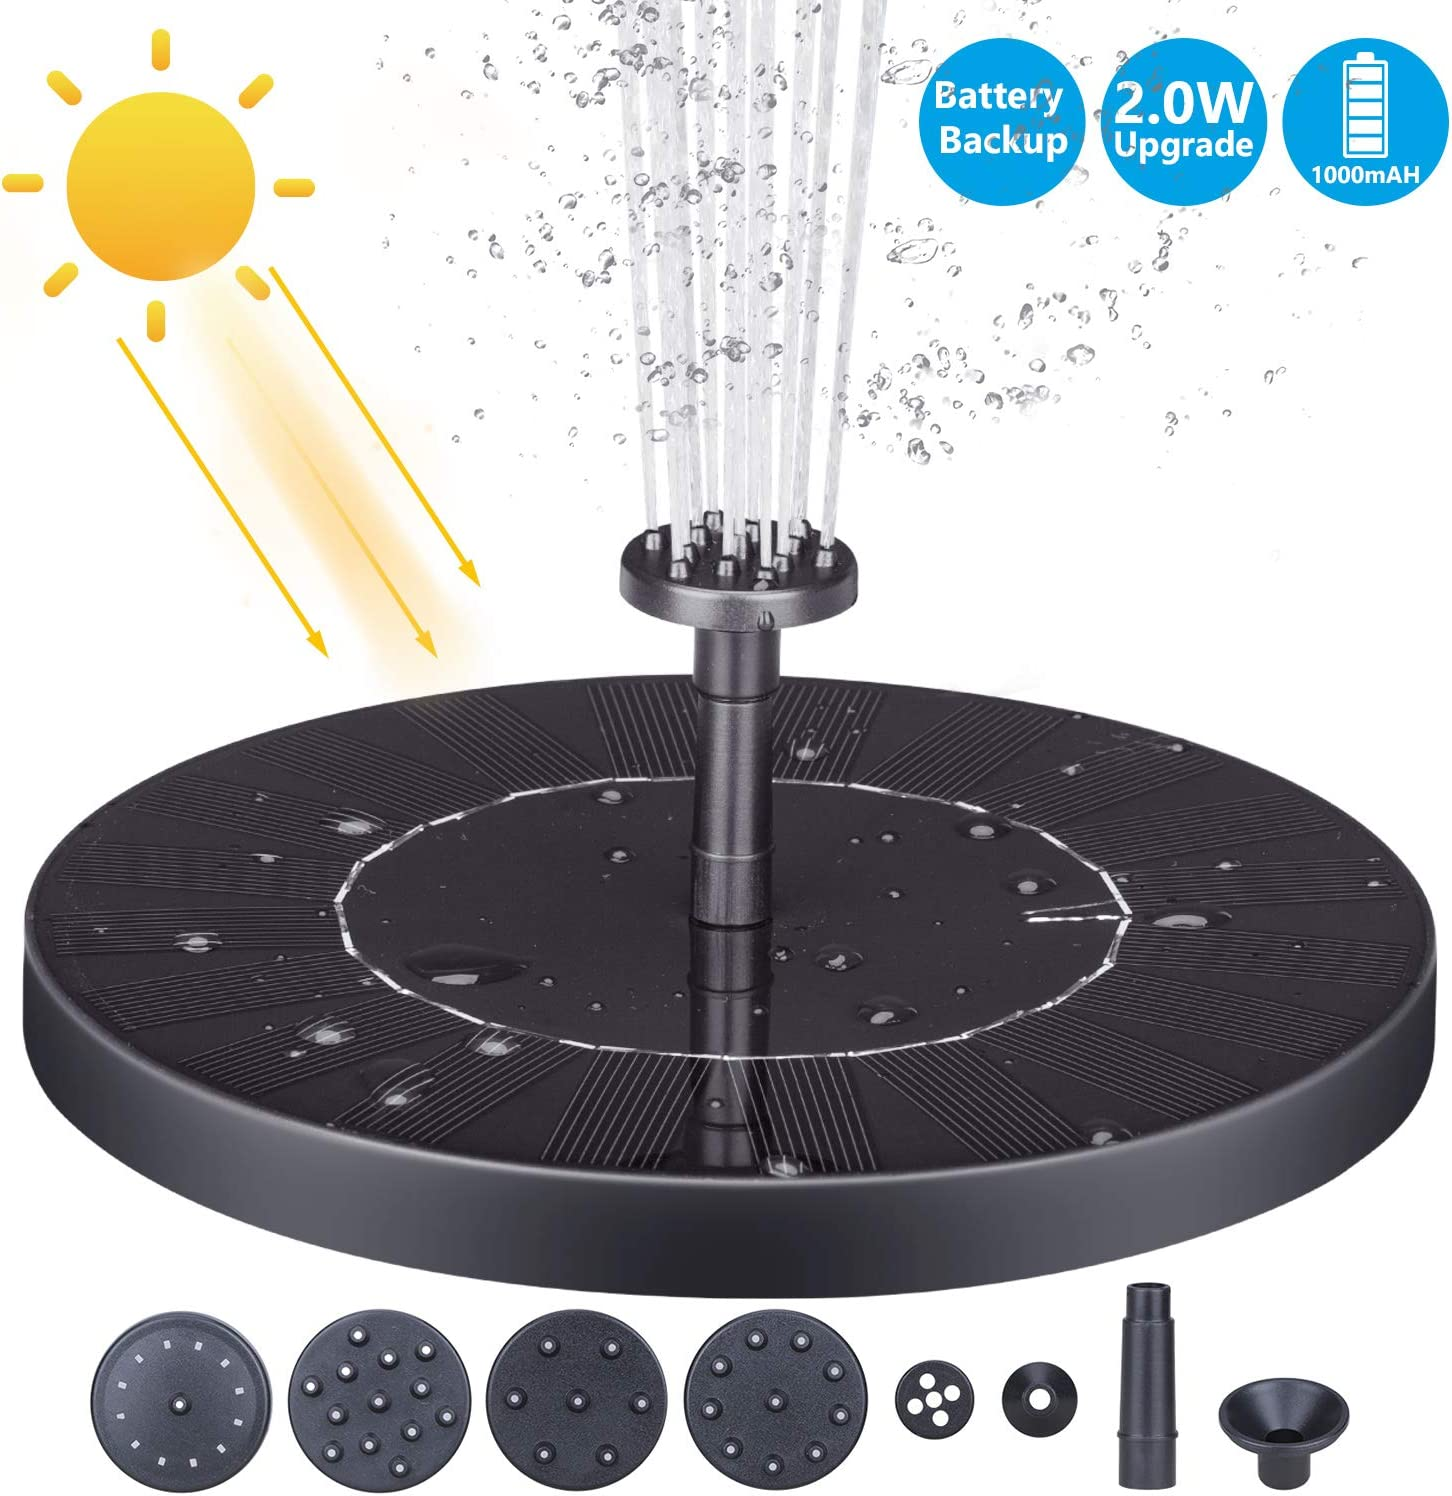 AISITIN 2.0W Solar Fountain Pump, 1000mAh Circle Solar Water Pump Floating Fountain Built-in Battery, with 6 Nozzles, for Bird Bath, Fish Tank, Pond or Garden Decoration pond heaters for outdoor ponds